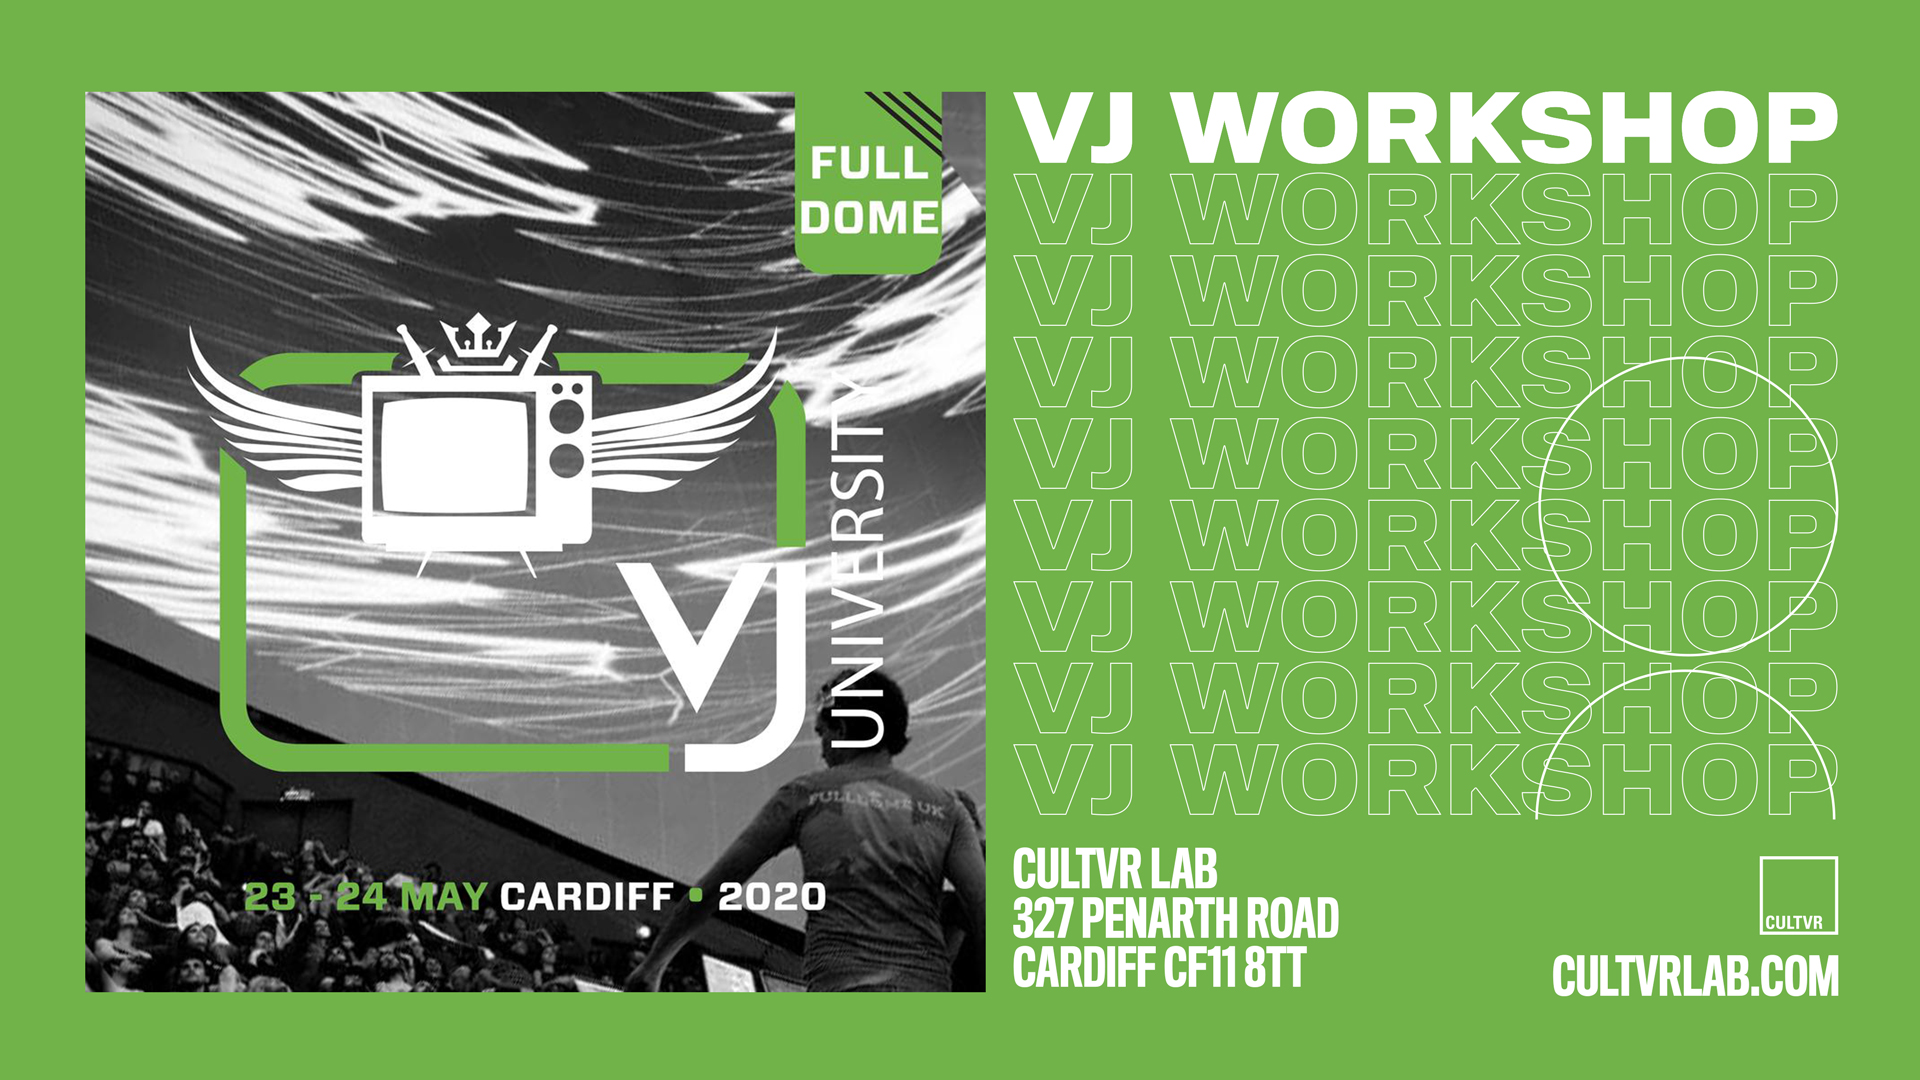 23RD & 24TH MAY / VJ UNIVERSITY FULLDOME WORKSHOP